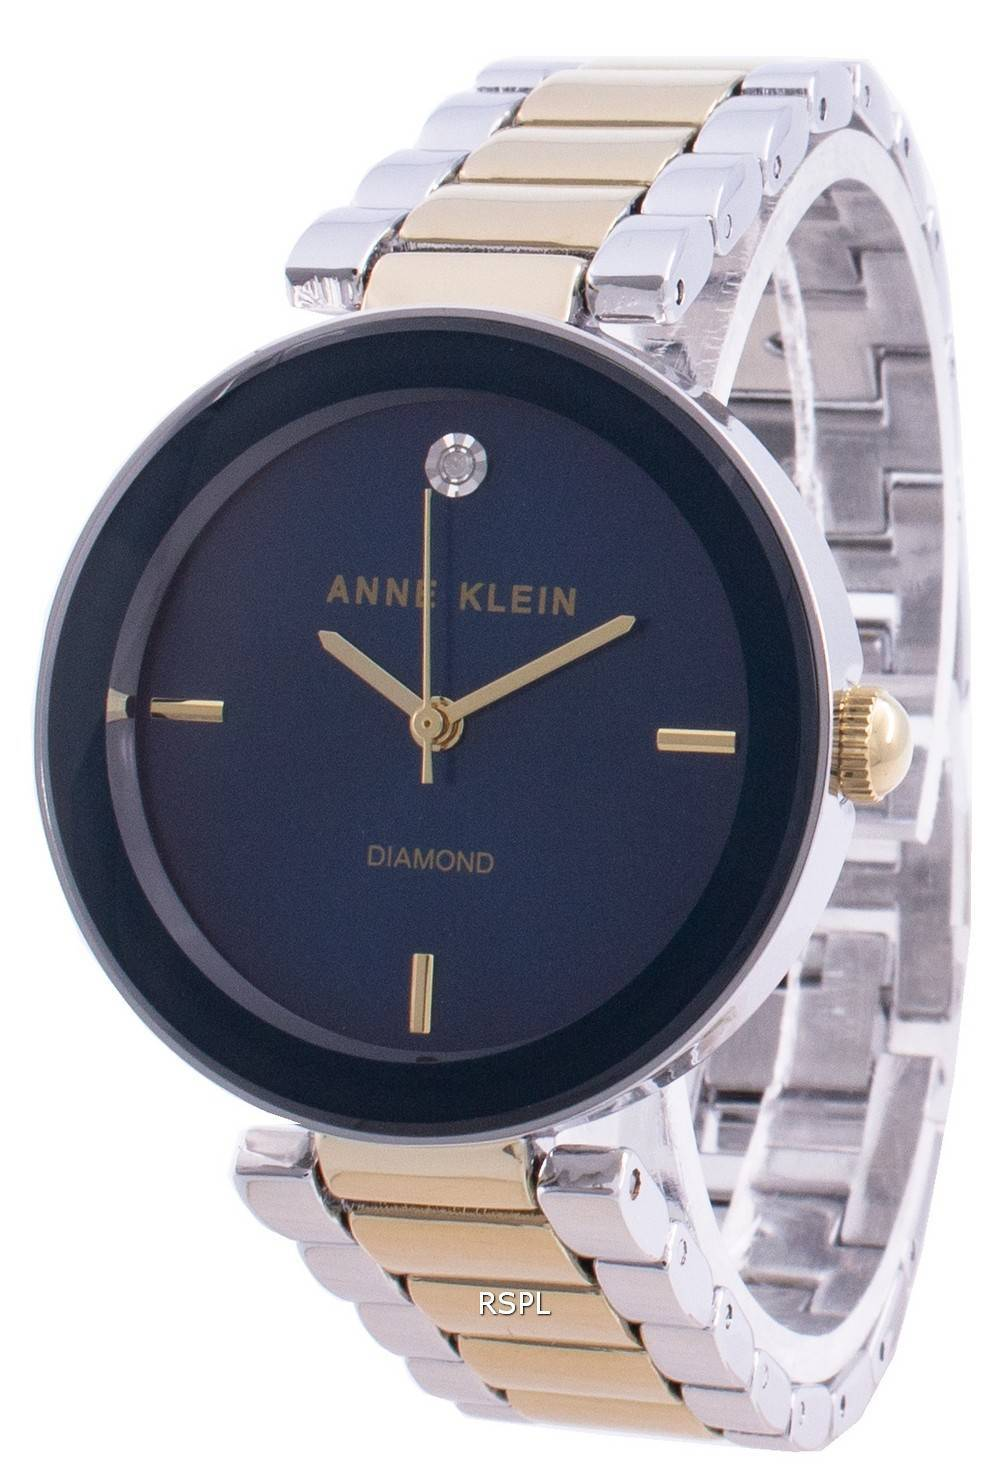 Anne Klein 1363NVTT Quartz Diamond Accents naistenkello